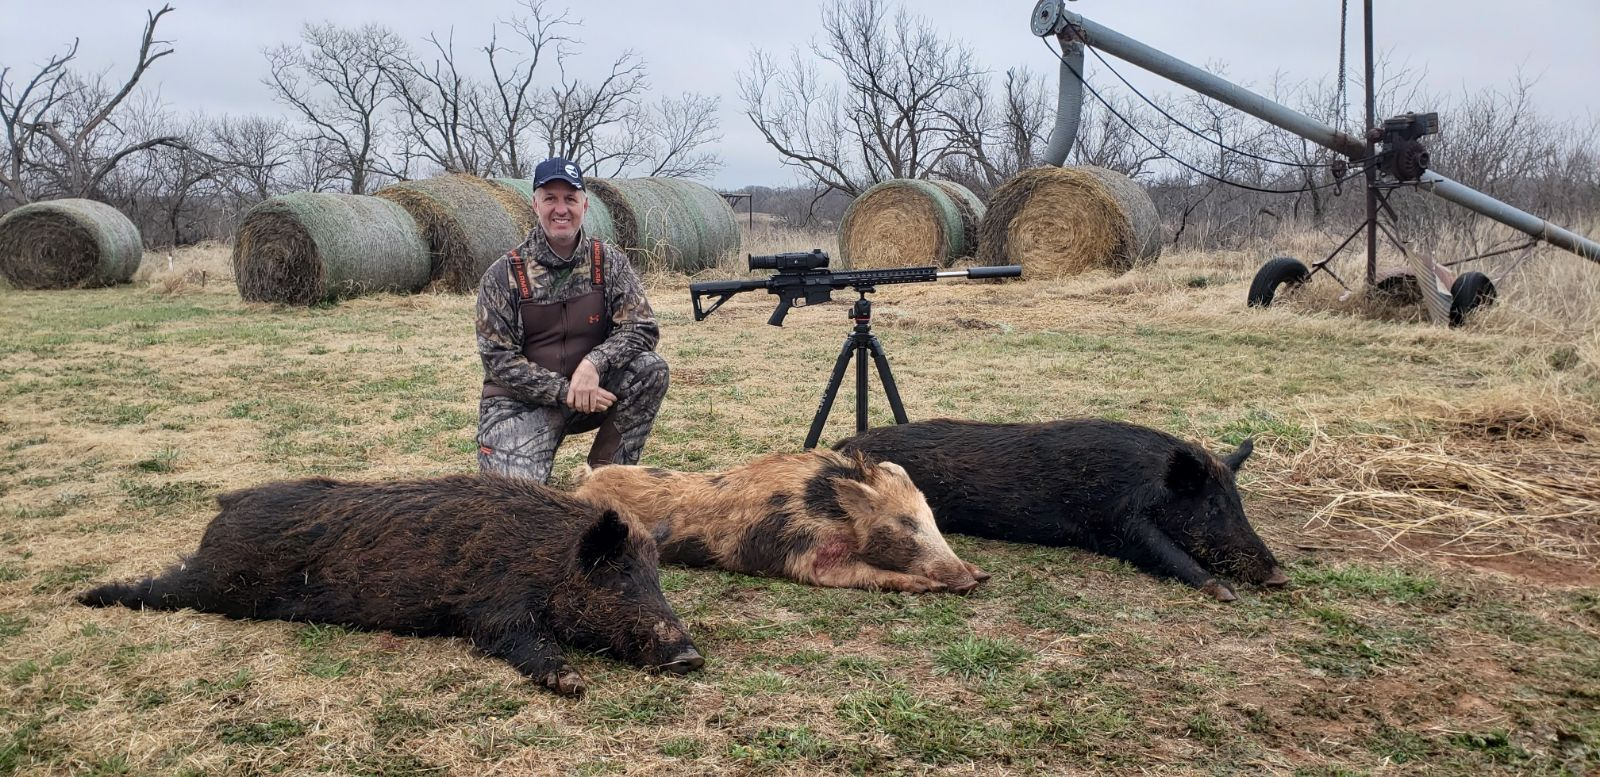 HOG HEAVEN! Just an ordinary day!